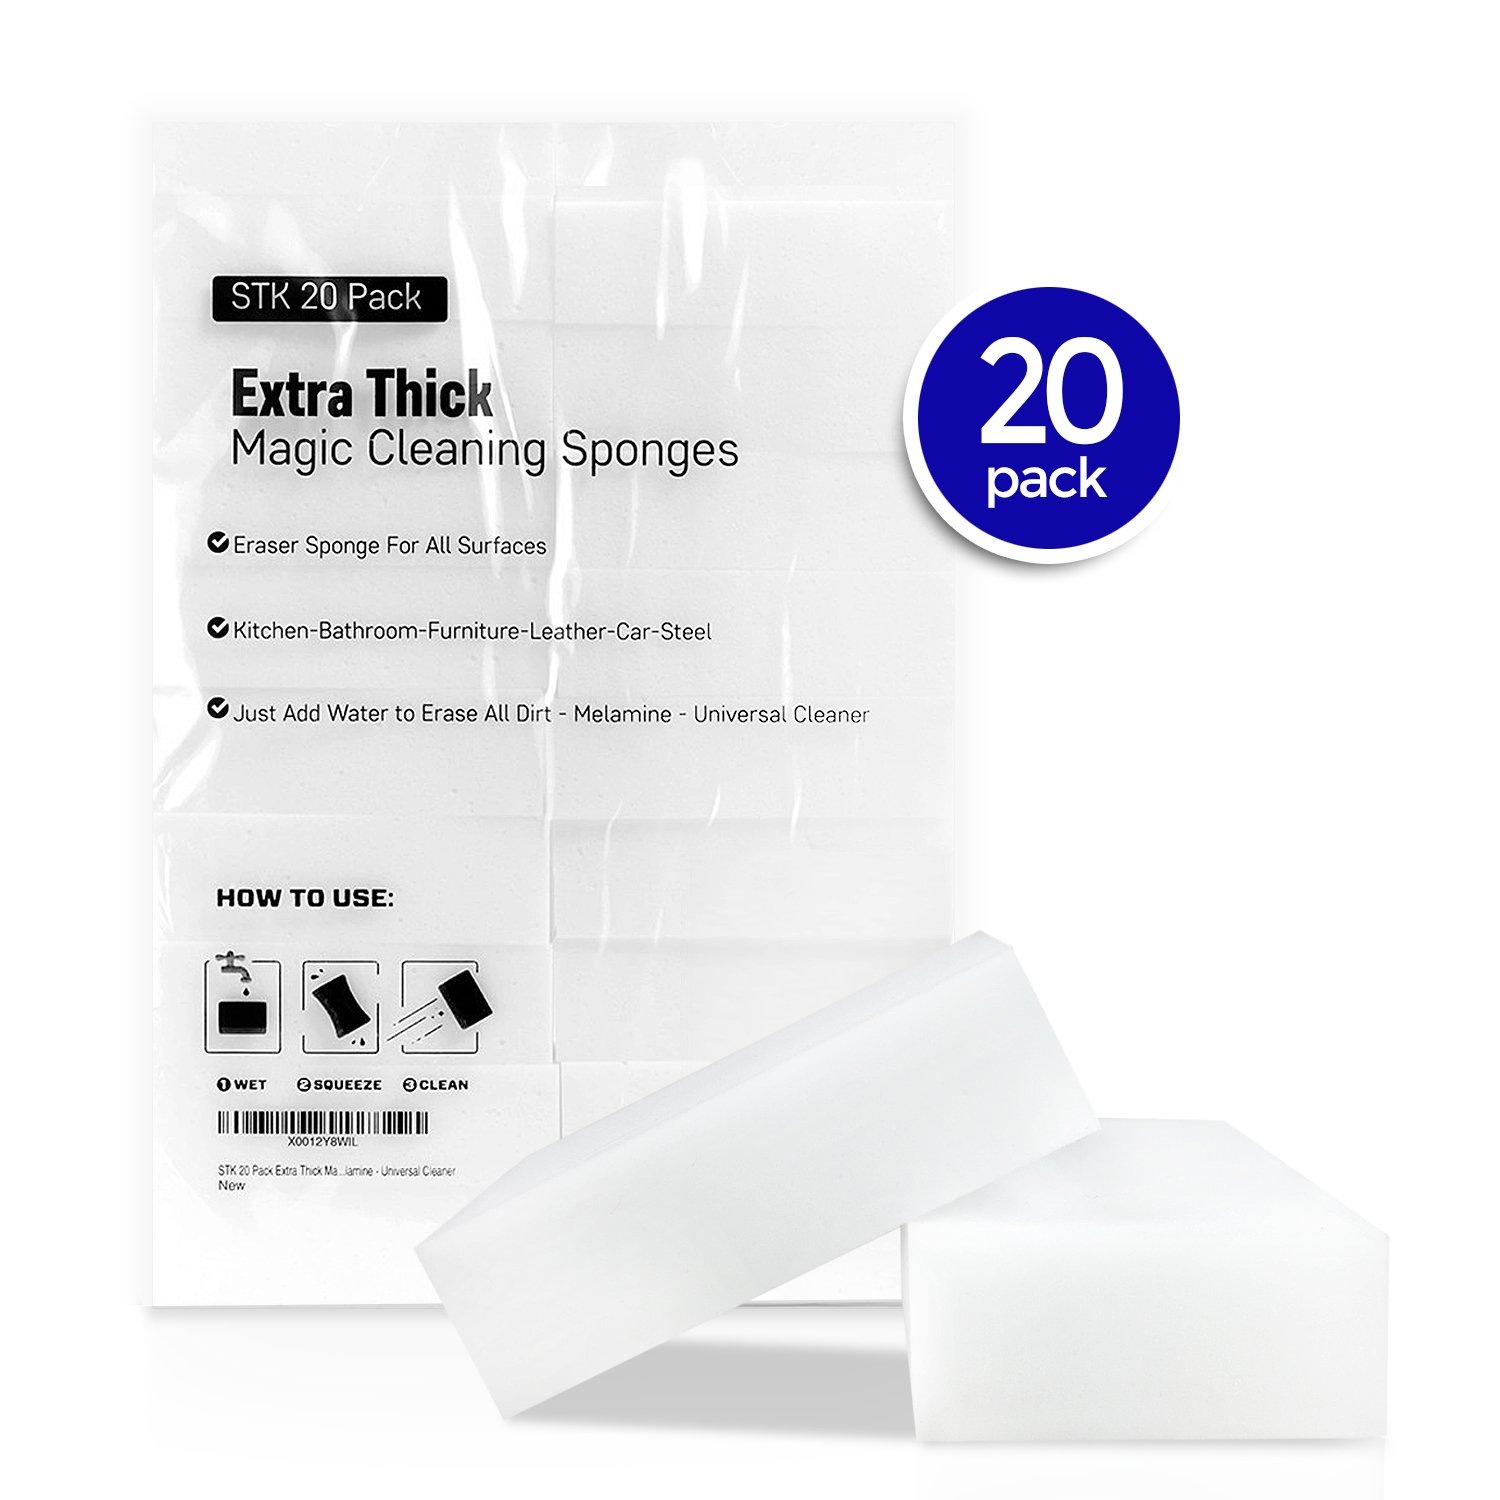 Amazon.com: STK 20 Pack Extra Thick Magic Cleaning Pads - Eraser ...